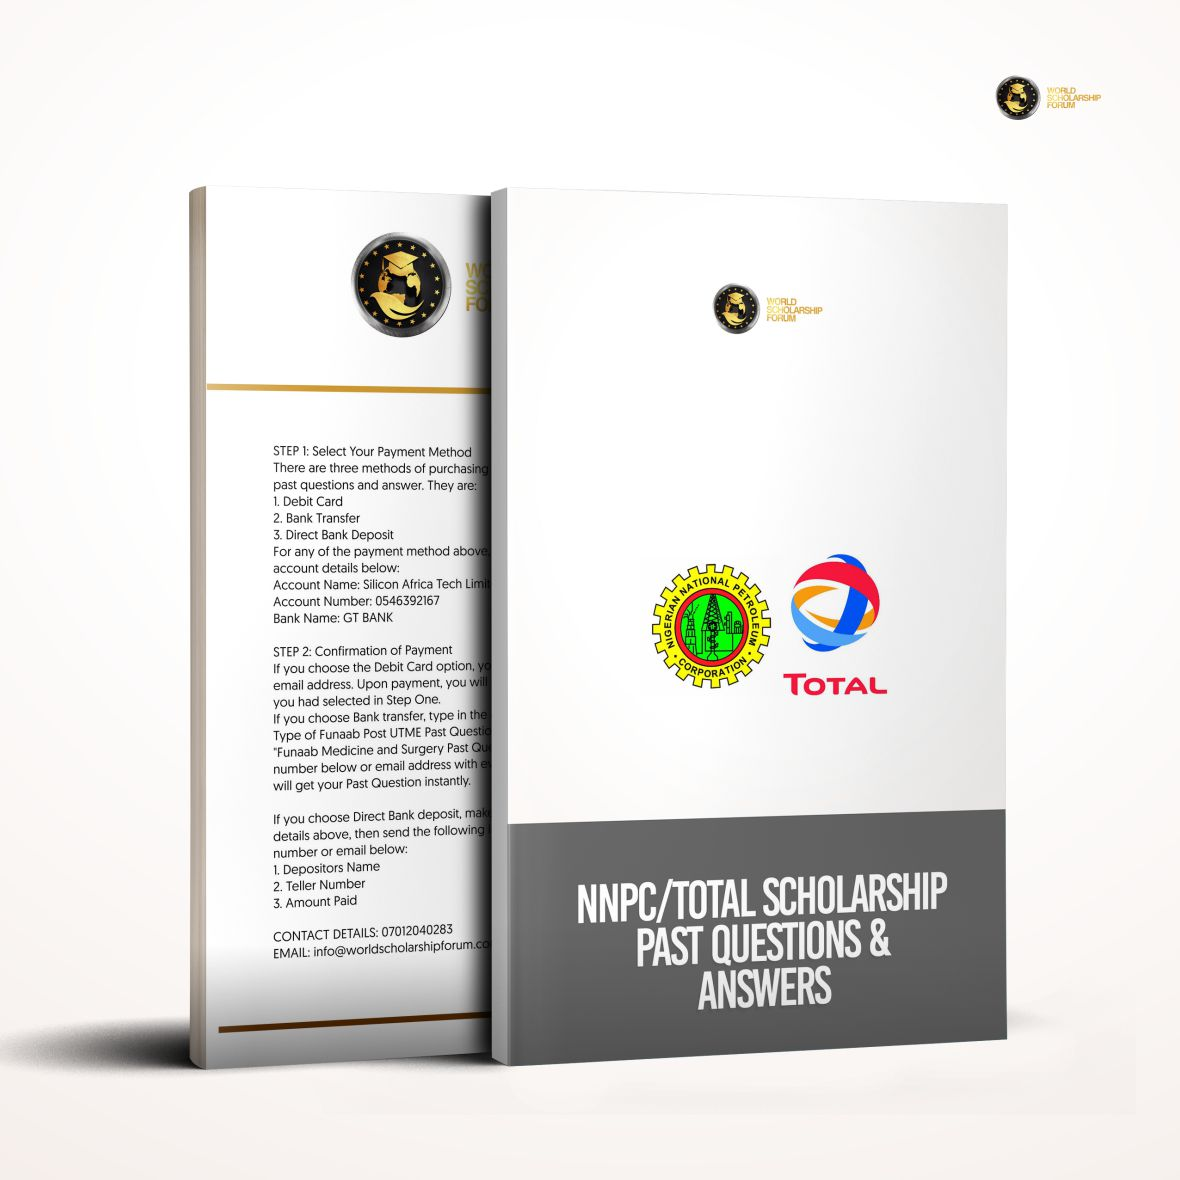 NNPC Total Scholarship Scheme Aptitude Test Past Questions and Answers